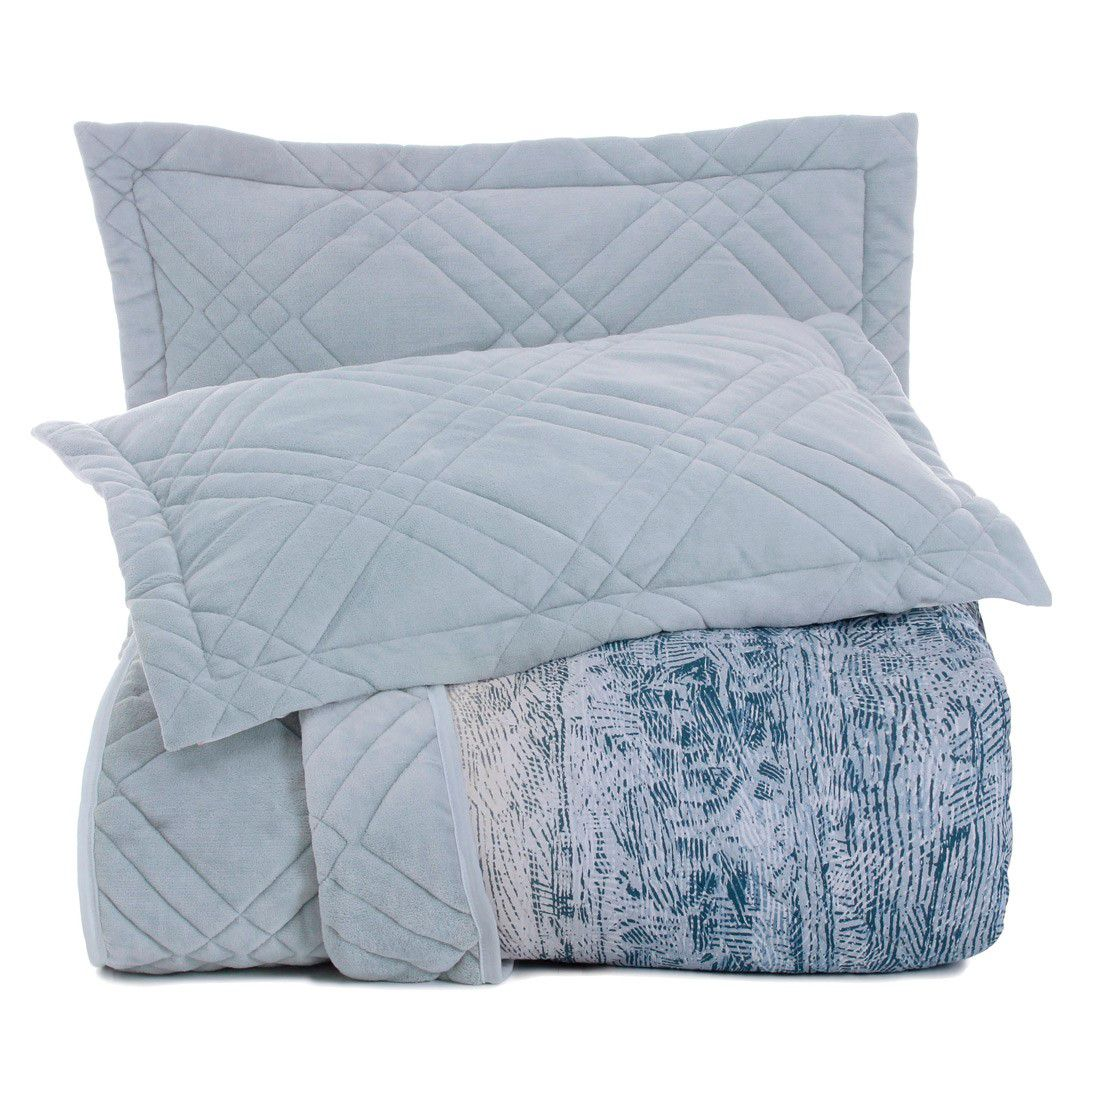 Edredom Queen Altenburg Blend Malha com Plush Universe - Azul